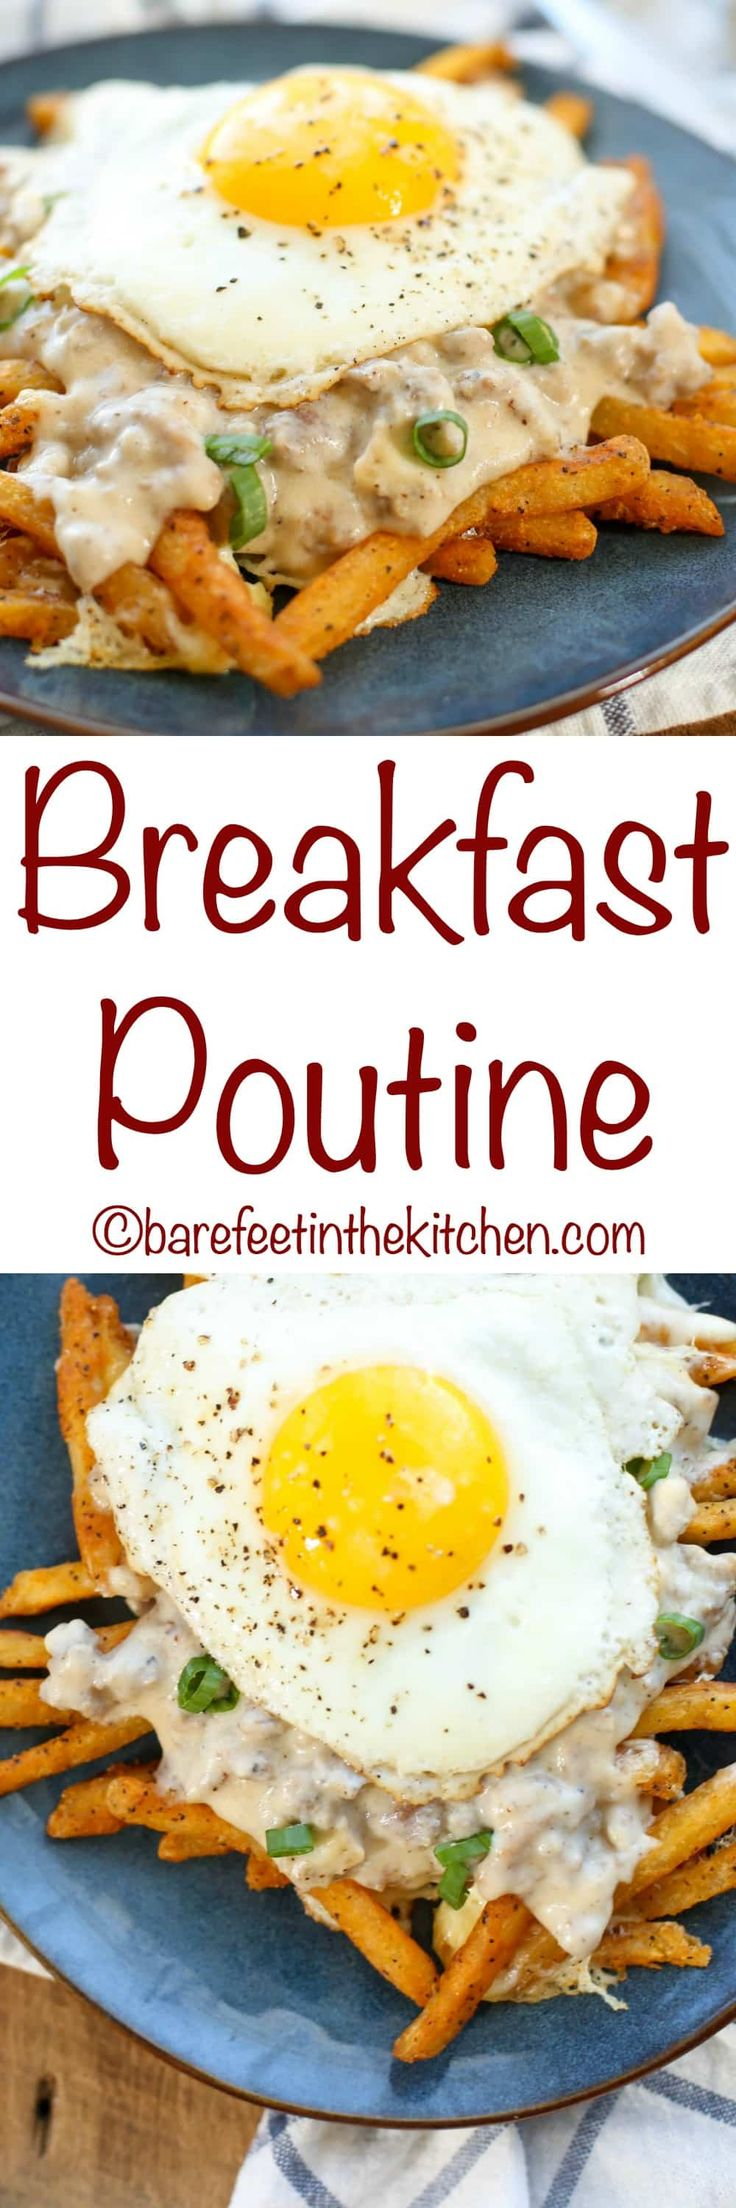 Crispy fries and melting cheese curds are topped with flavorful sausage gravy and an over-easyfried egg to create this unforgettable Breakfast Poutine! get the recipe at barefeetinthekitchen.com